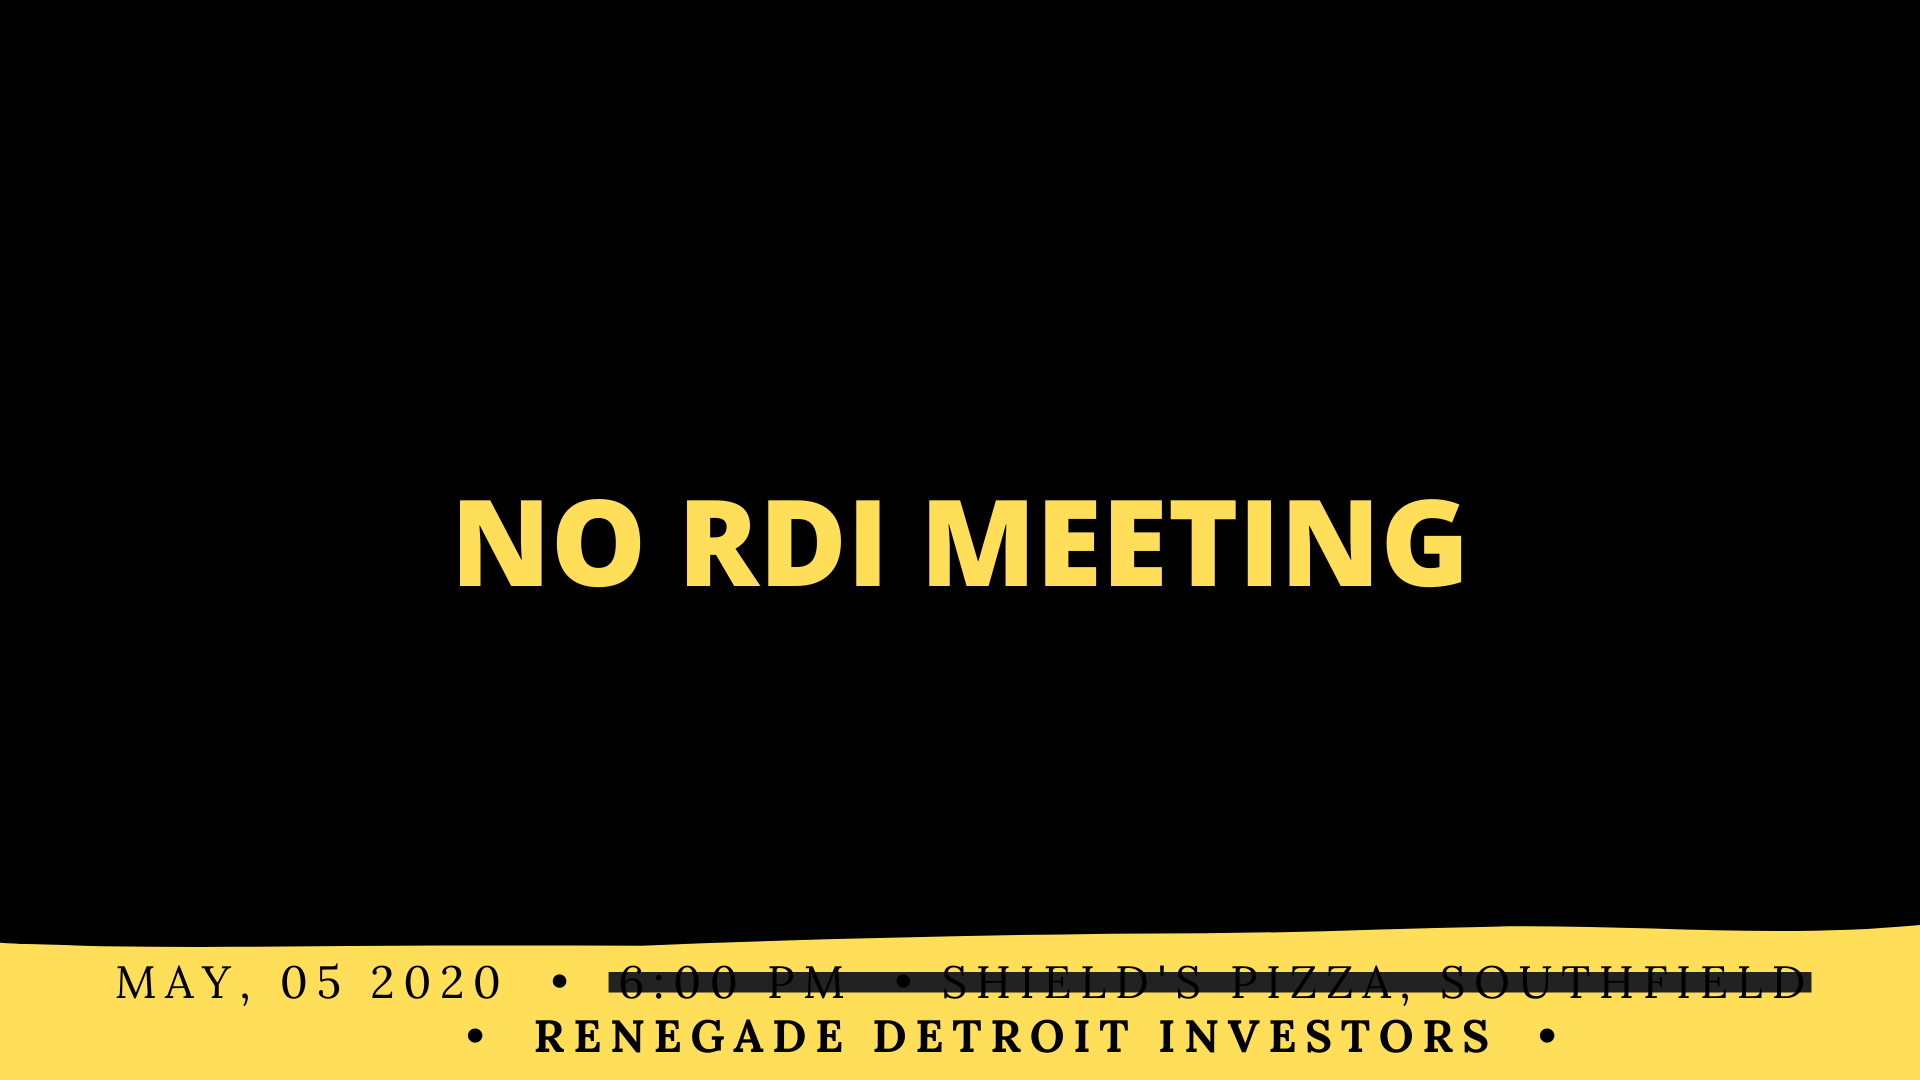 No RDI May 2020 Meeting